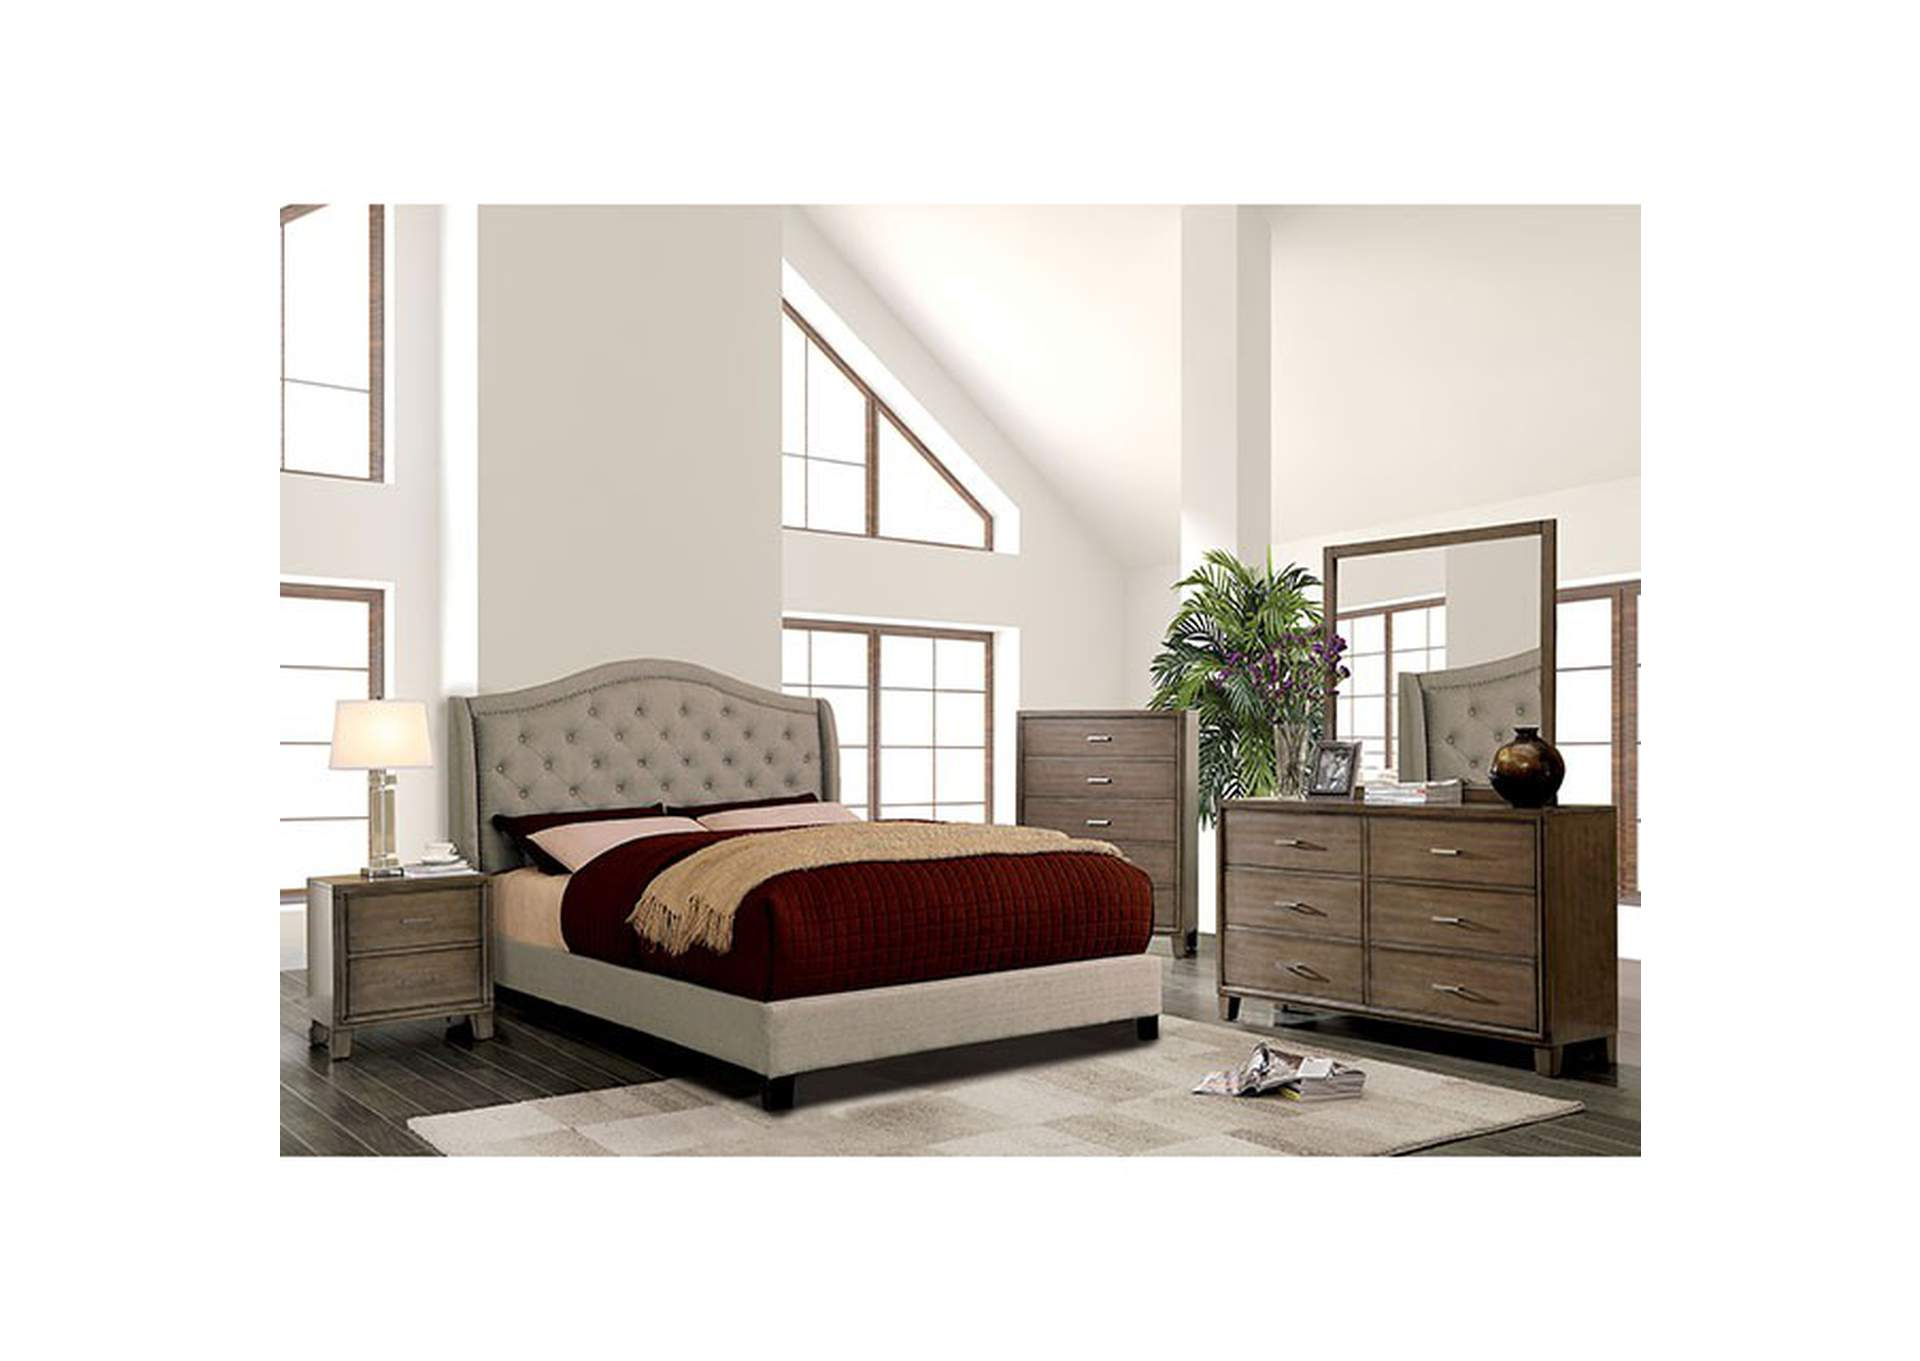 Carly Warm Gray Upholstered Queen Platform Bed,Furniture of America